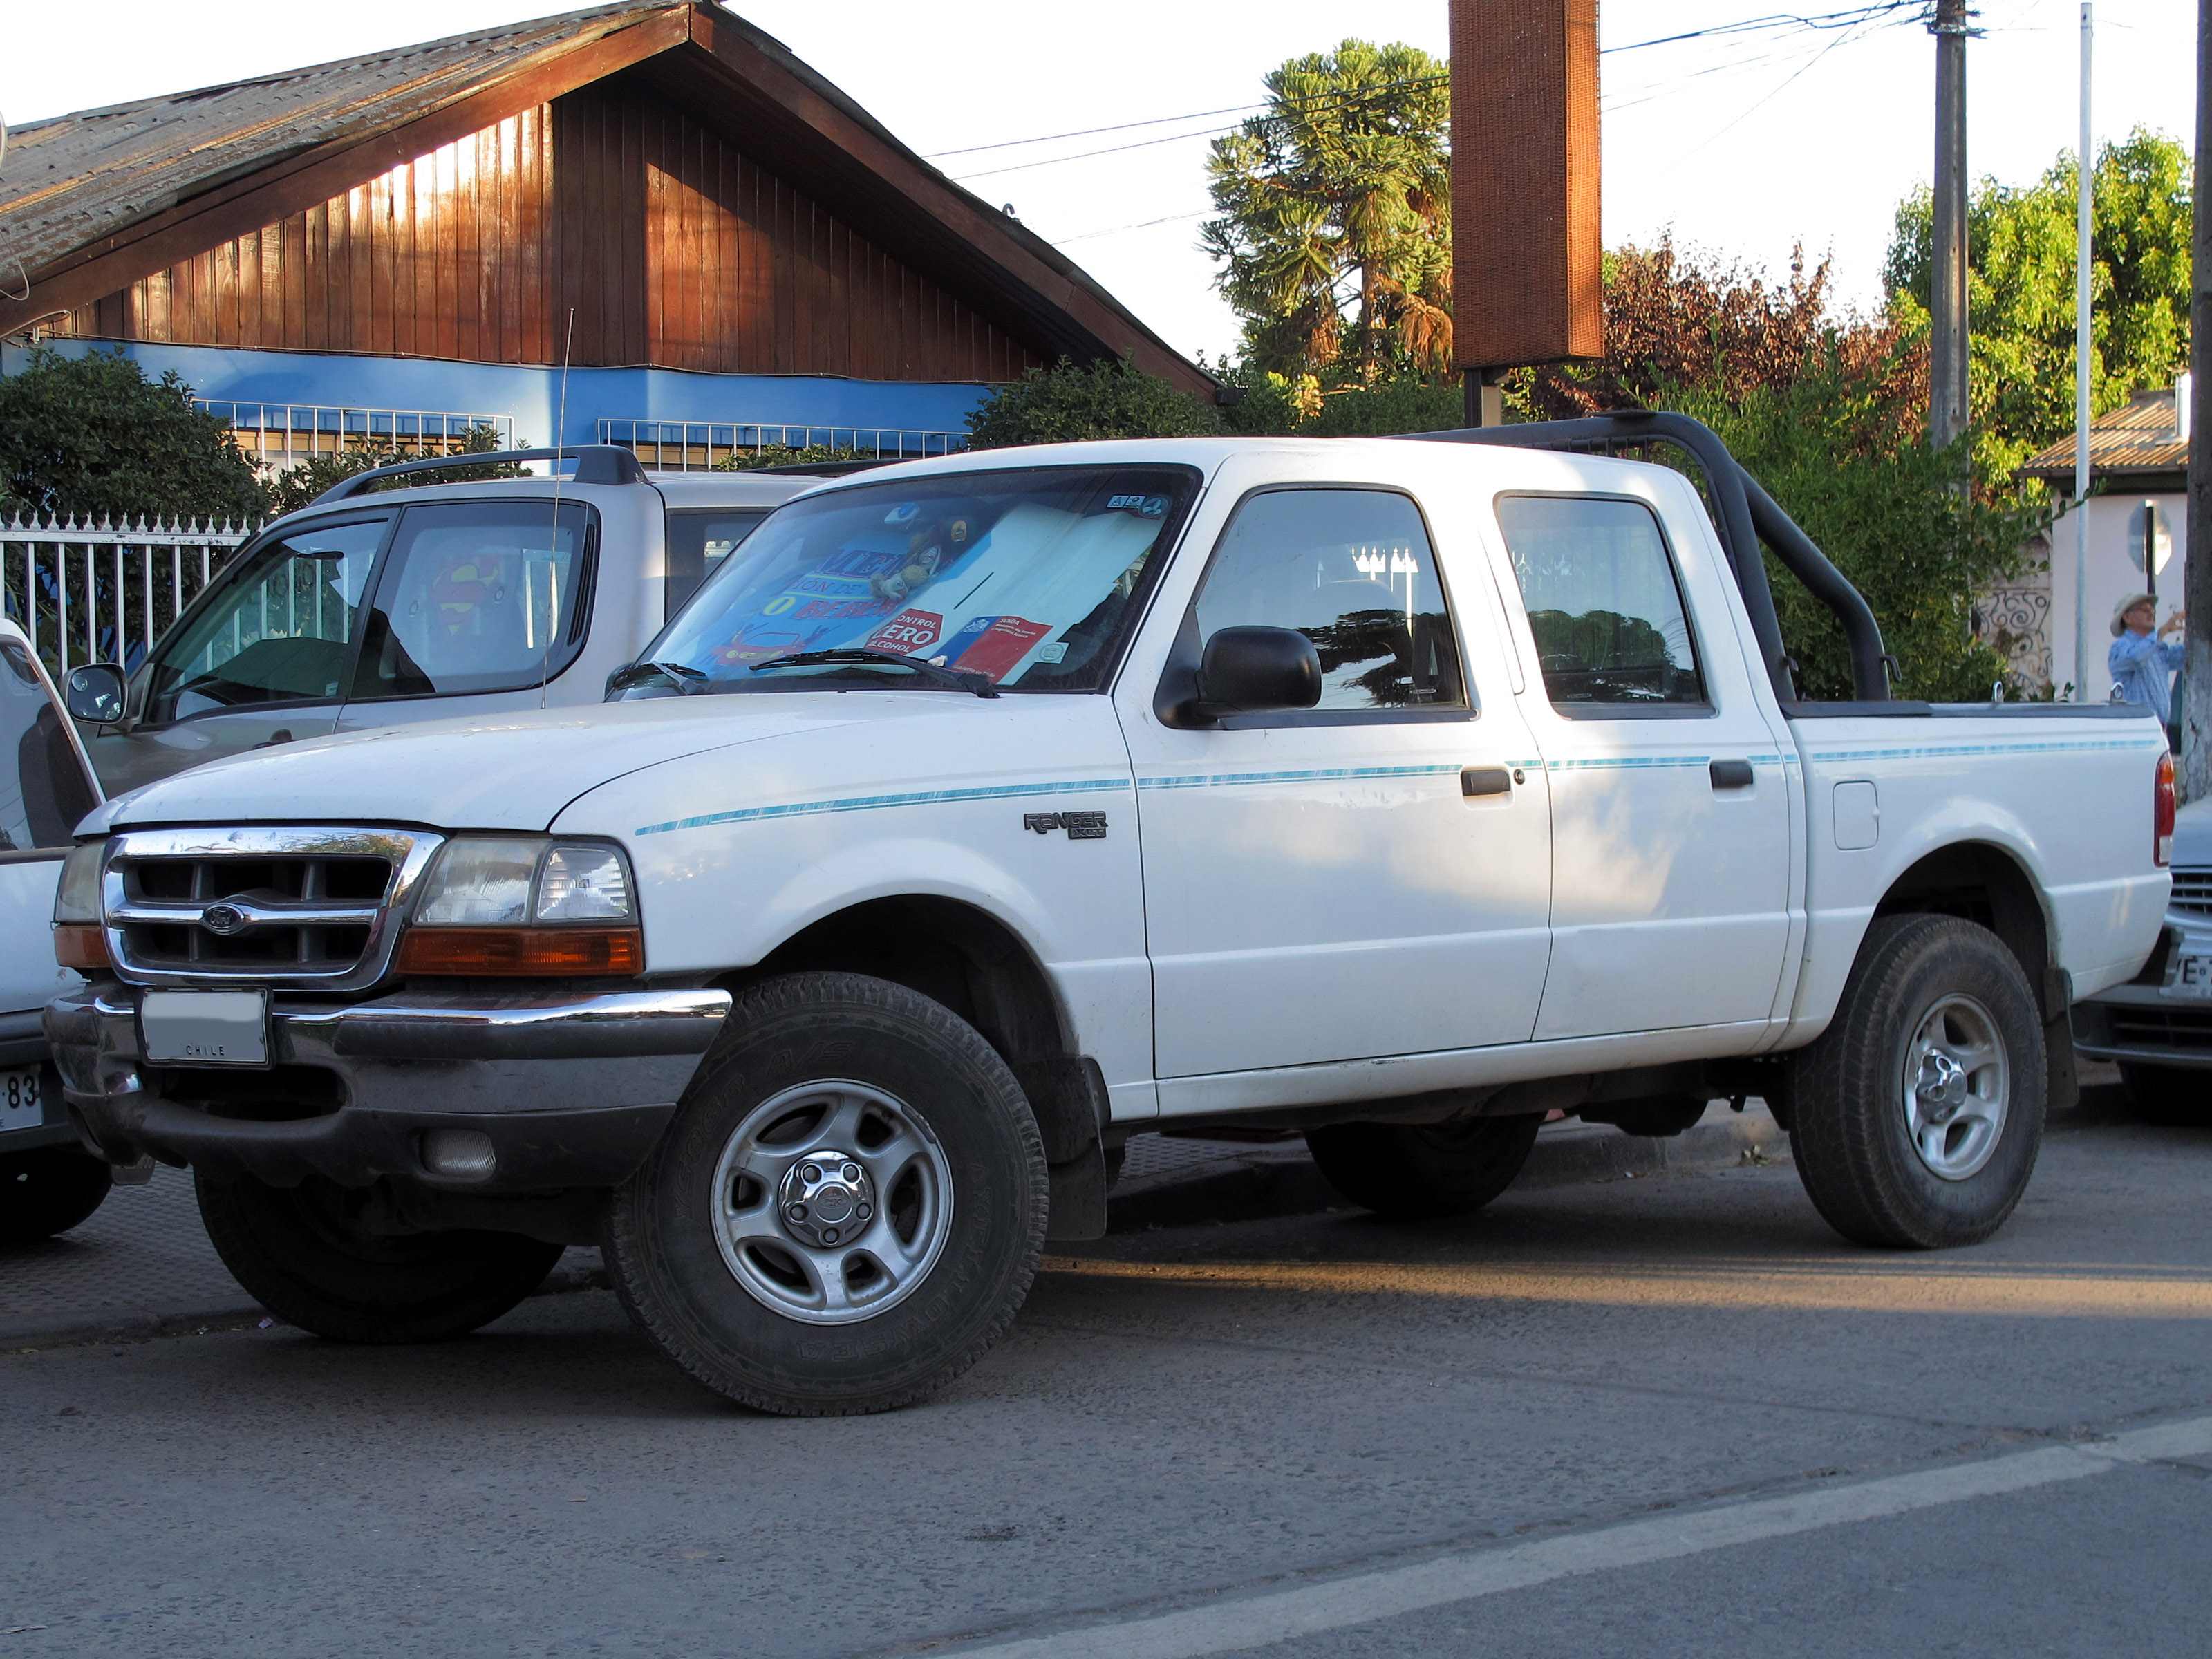 Ford Ranger Extended Cab Bed Size